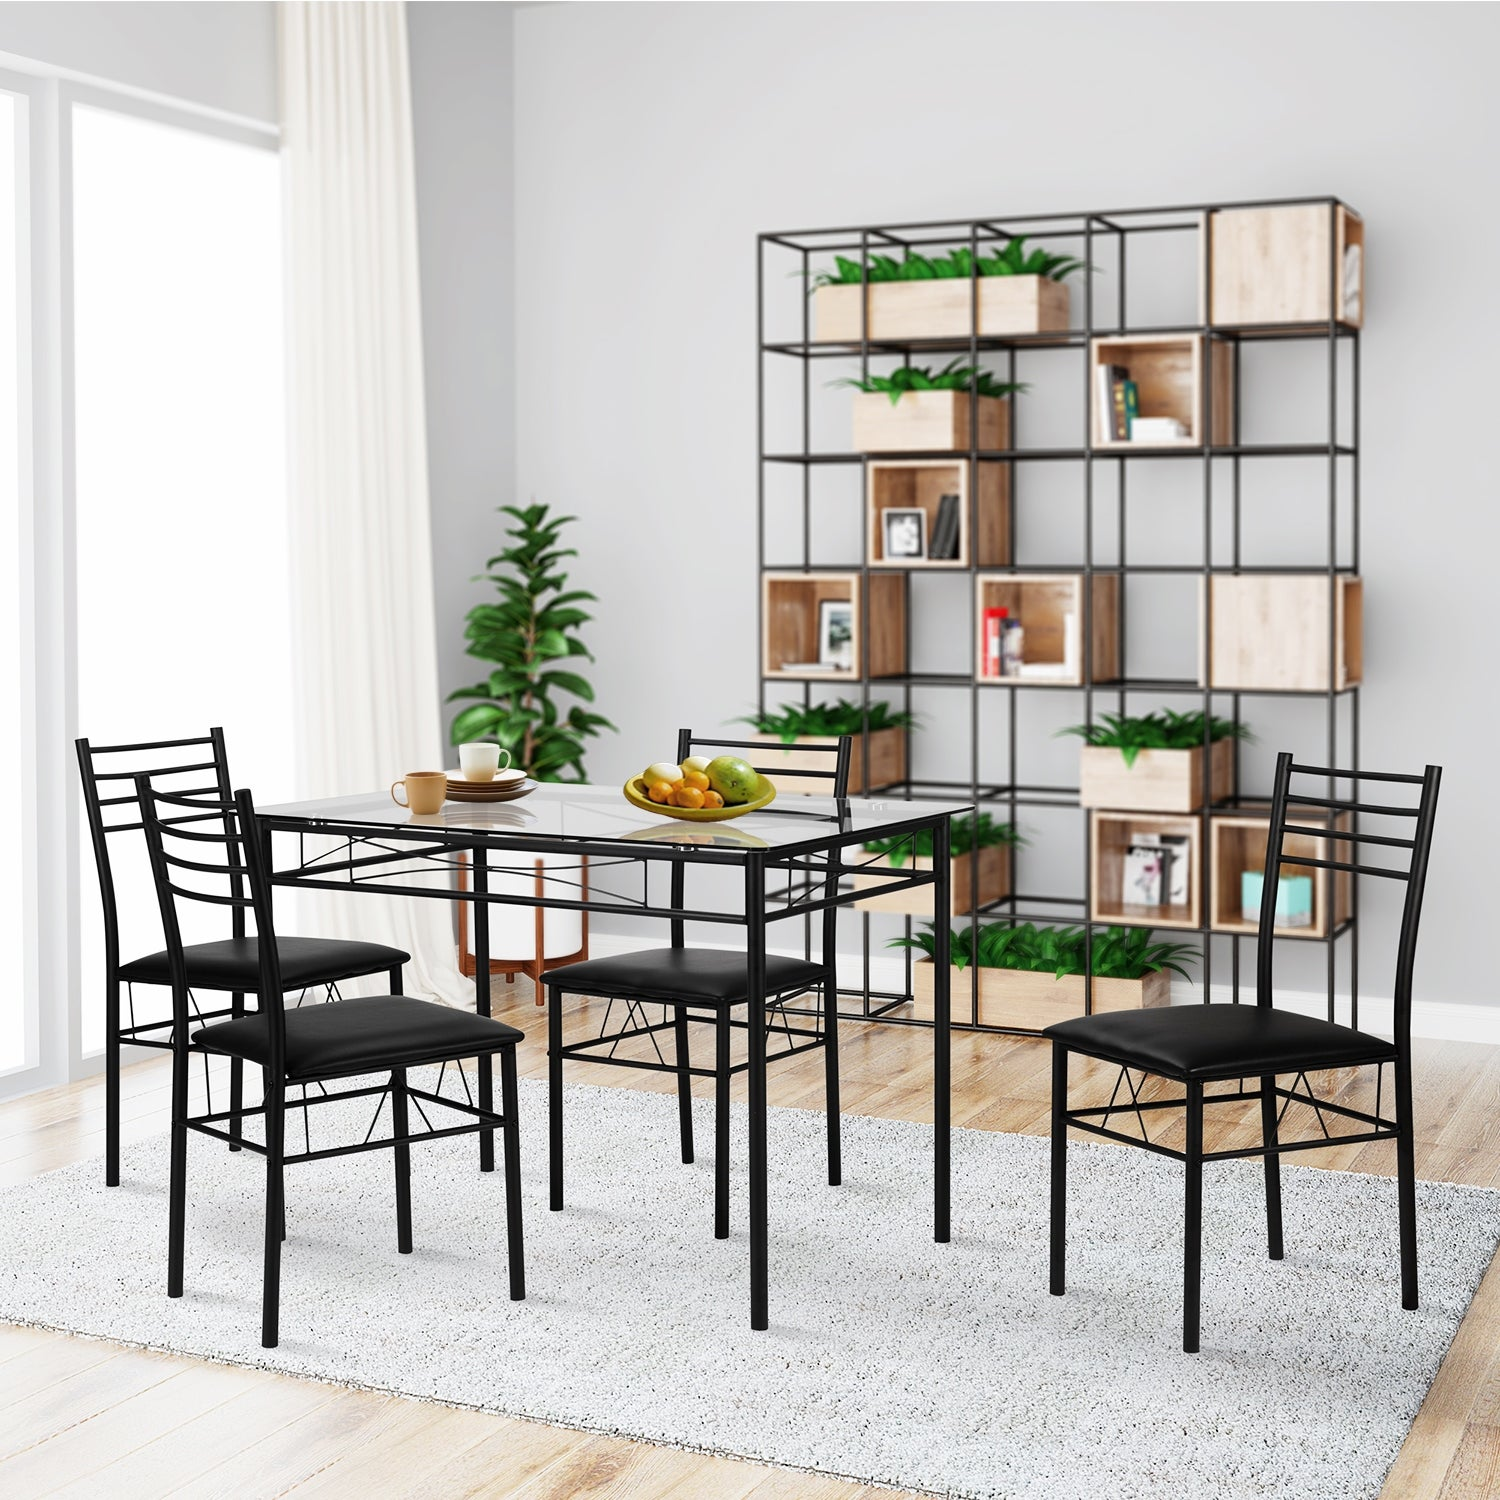 VECELO Glass Dining Table Setwith 4 Chairs Kitchen Table set(Black/Silver) - Free Shipping Today - Overstock - 19765470  sc 1 st  Overstock.com & VECELO Glass Dining Table Setwith 4 Chairs Kitchen Table set(Black ...